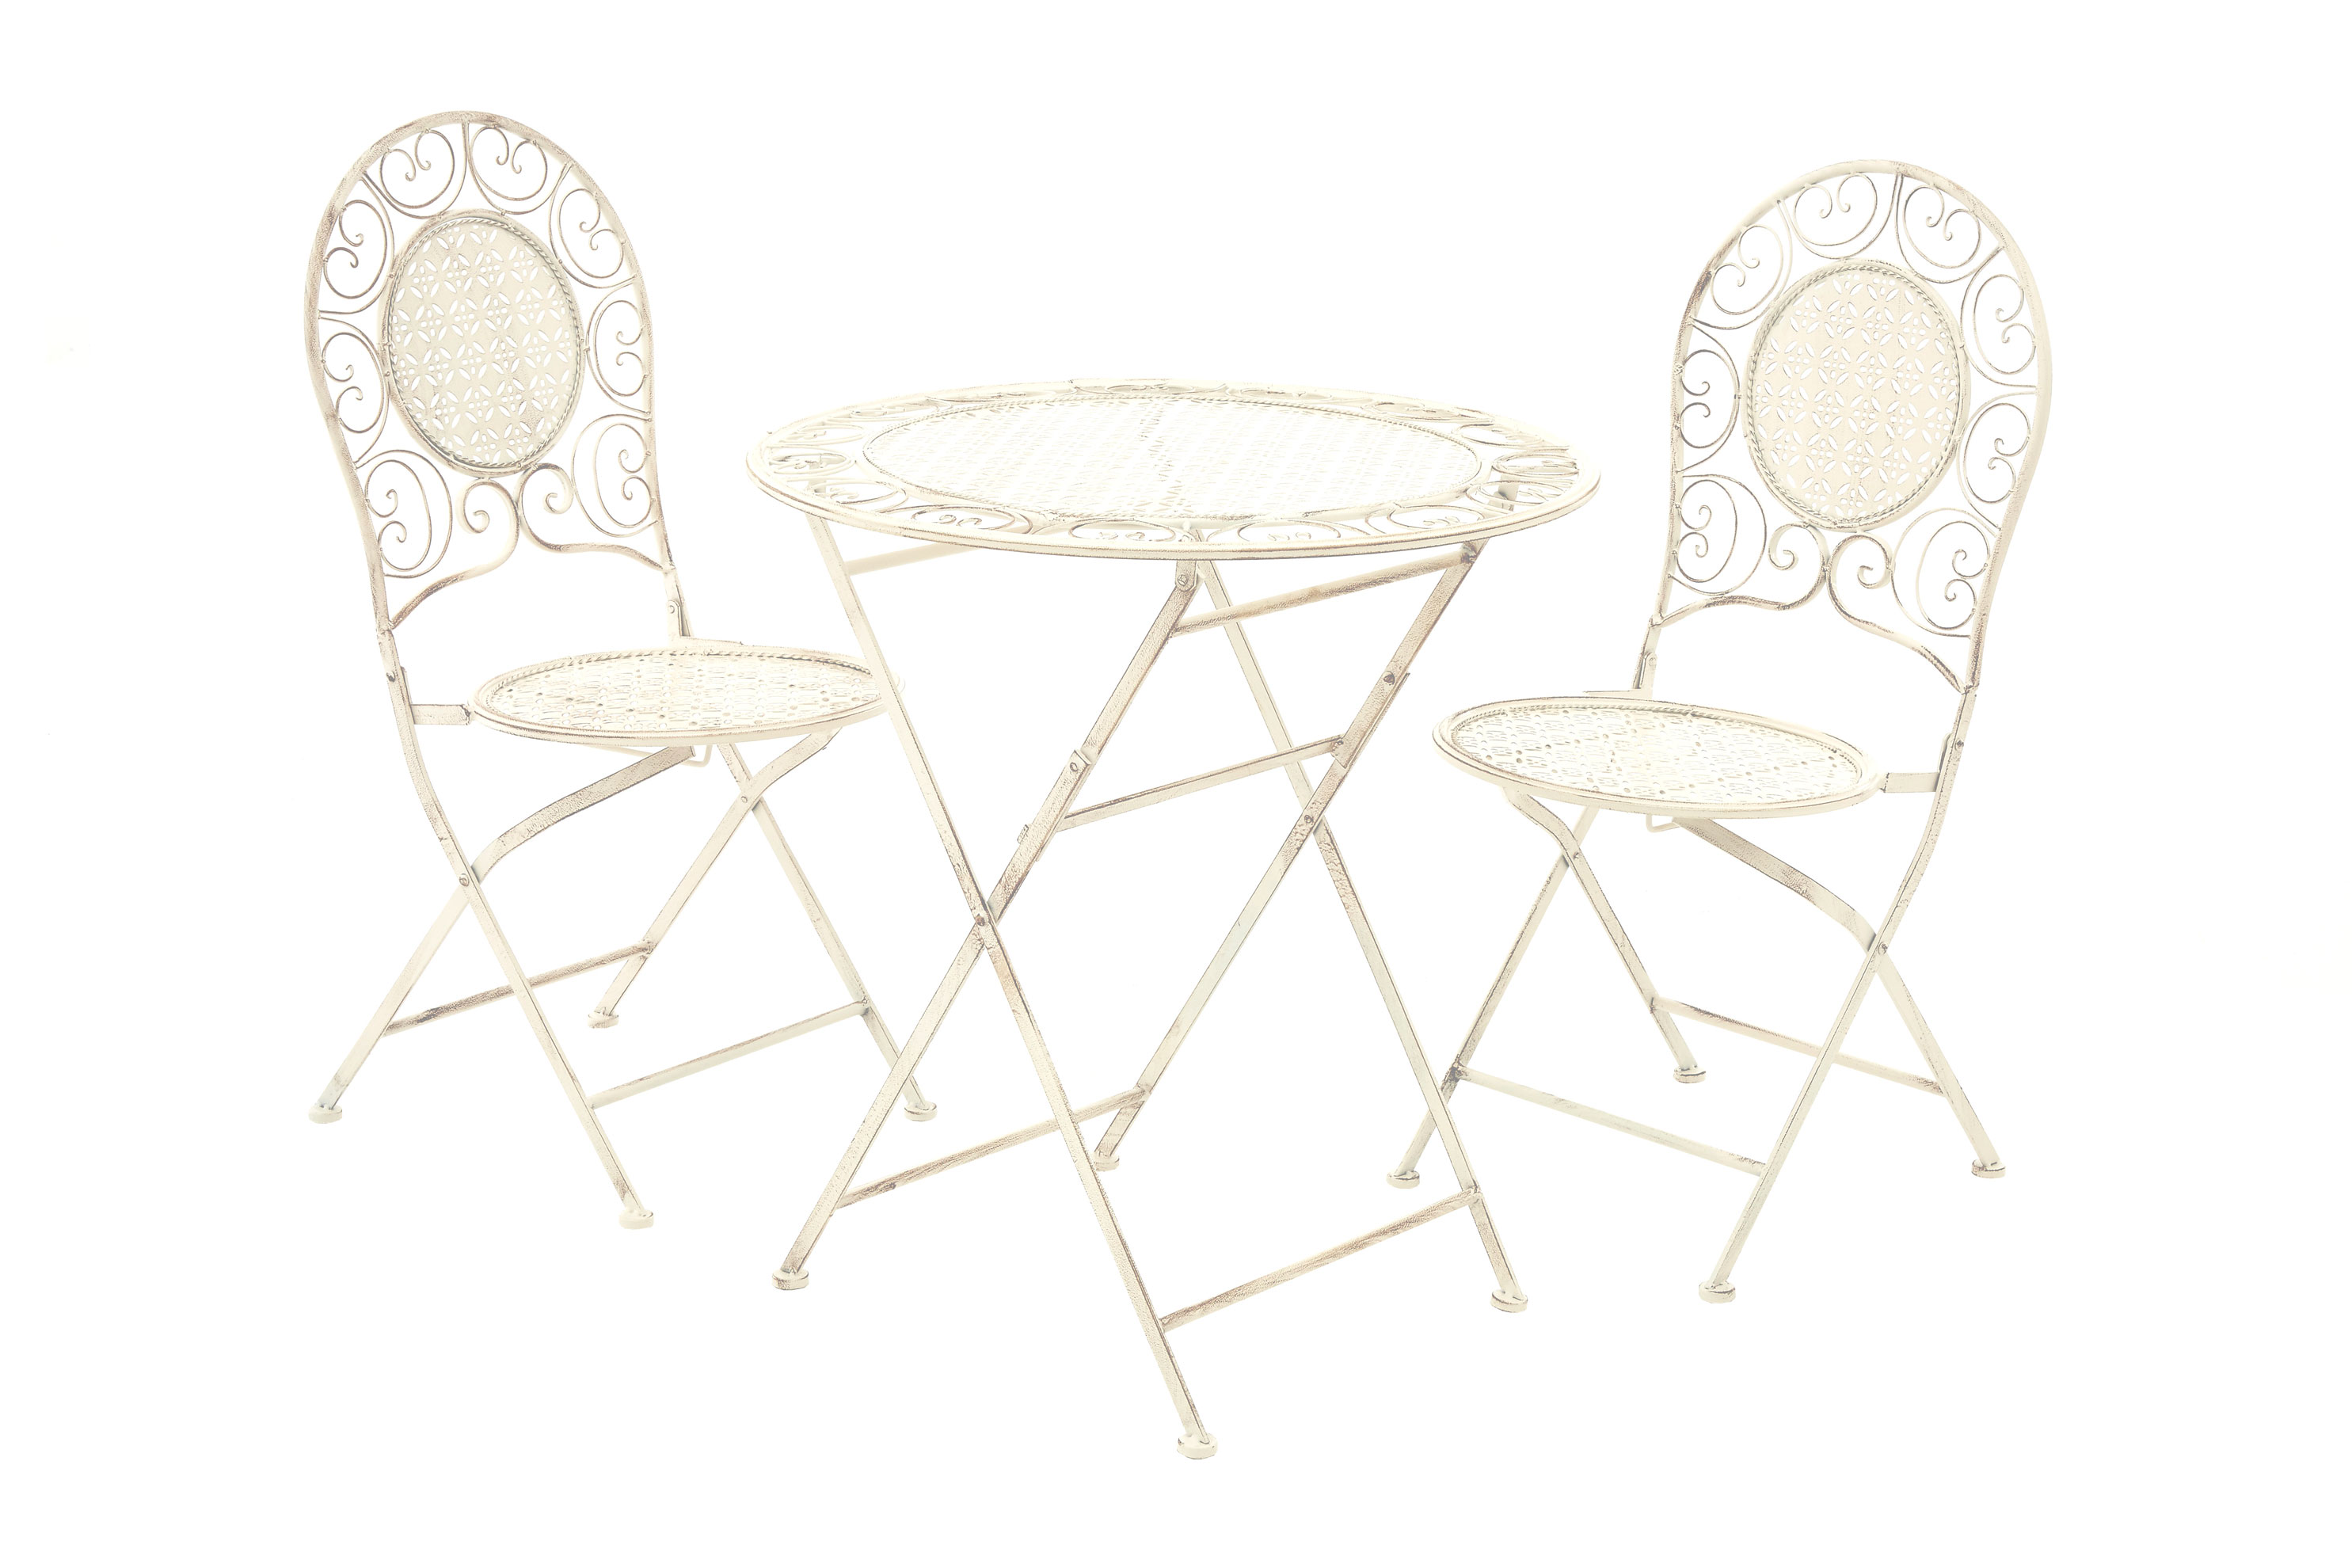 Wrought Iron 3 Piece Outdoor Setting 3pc Cream Wrought Iron Table Set 1 Folding Table 2 Folding